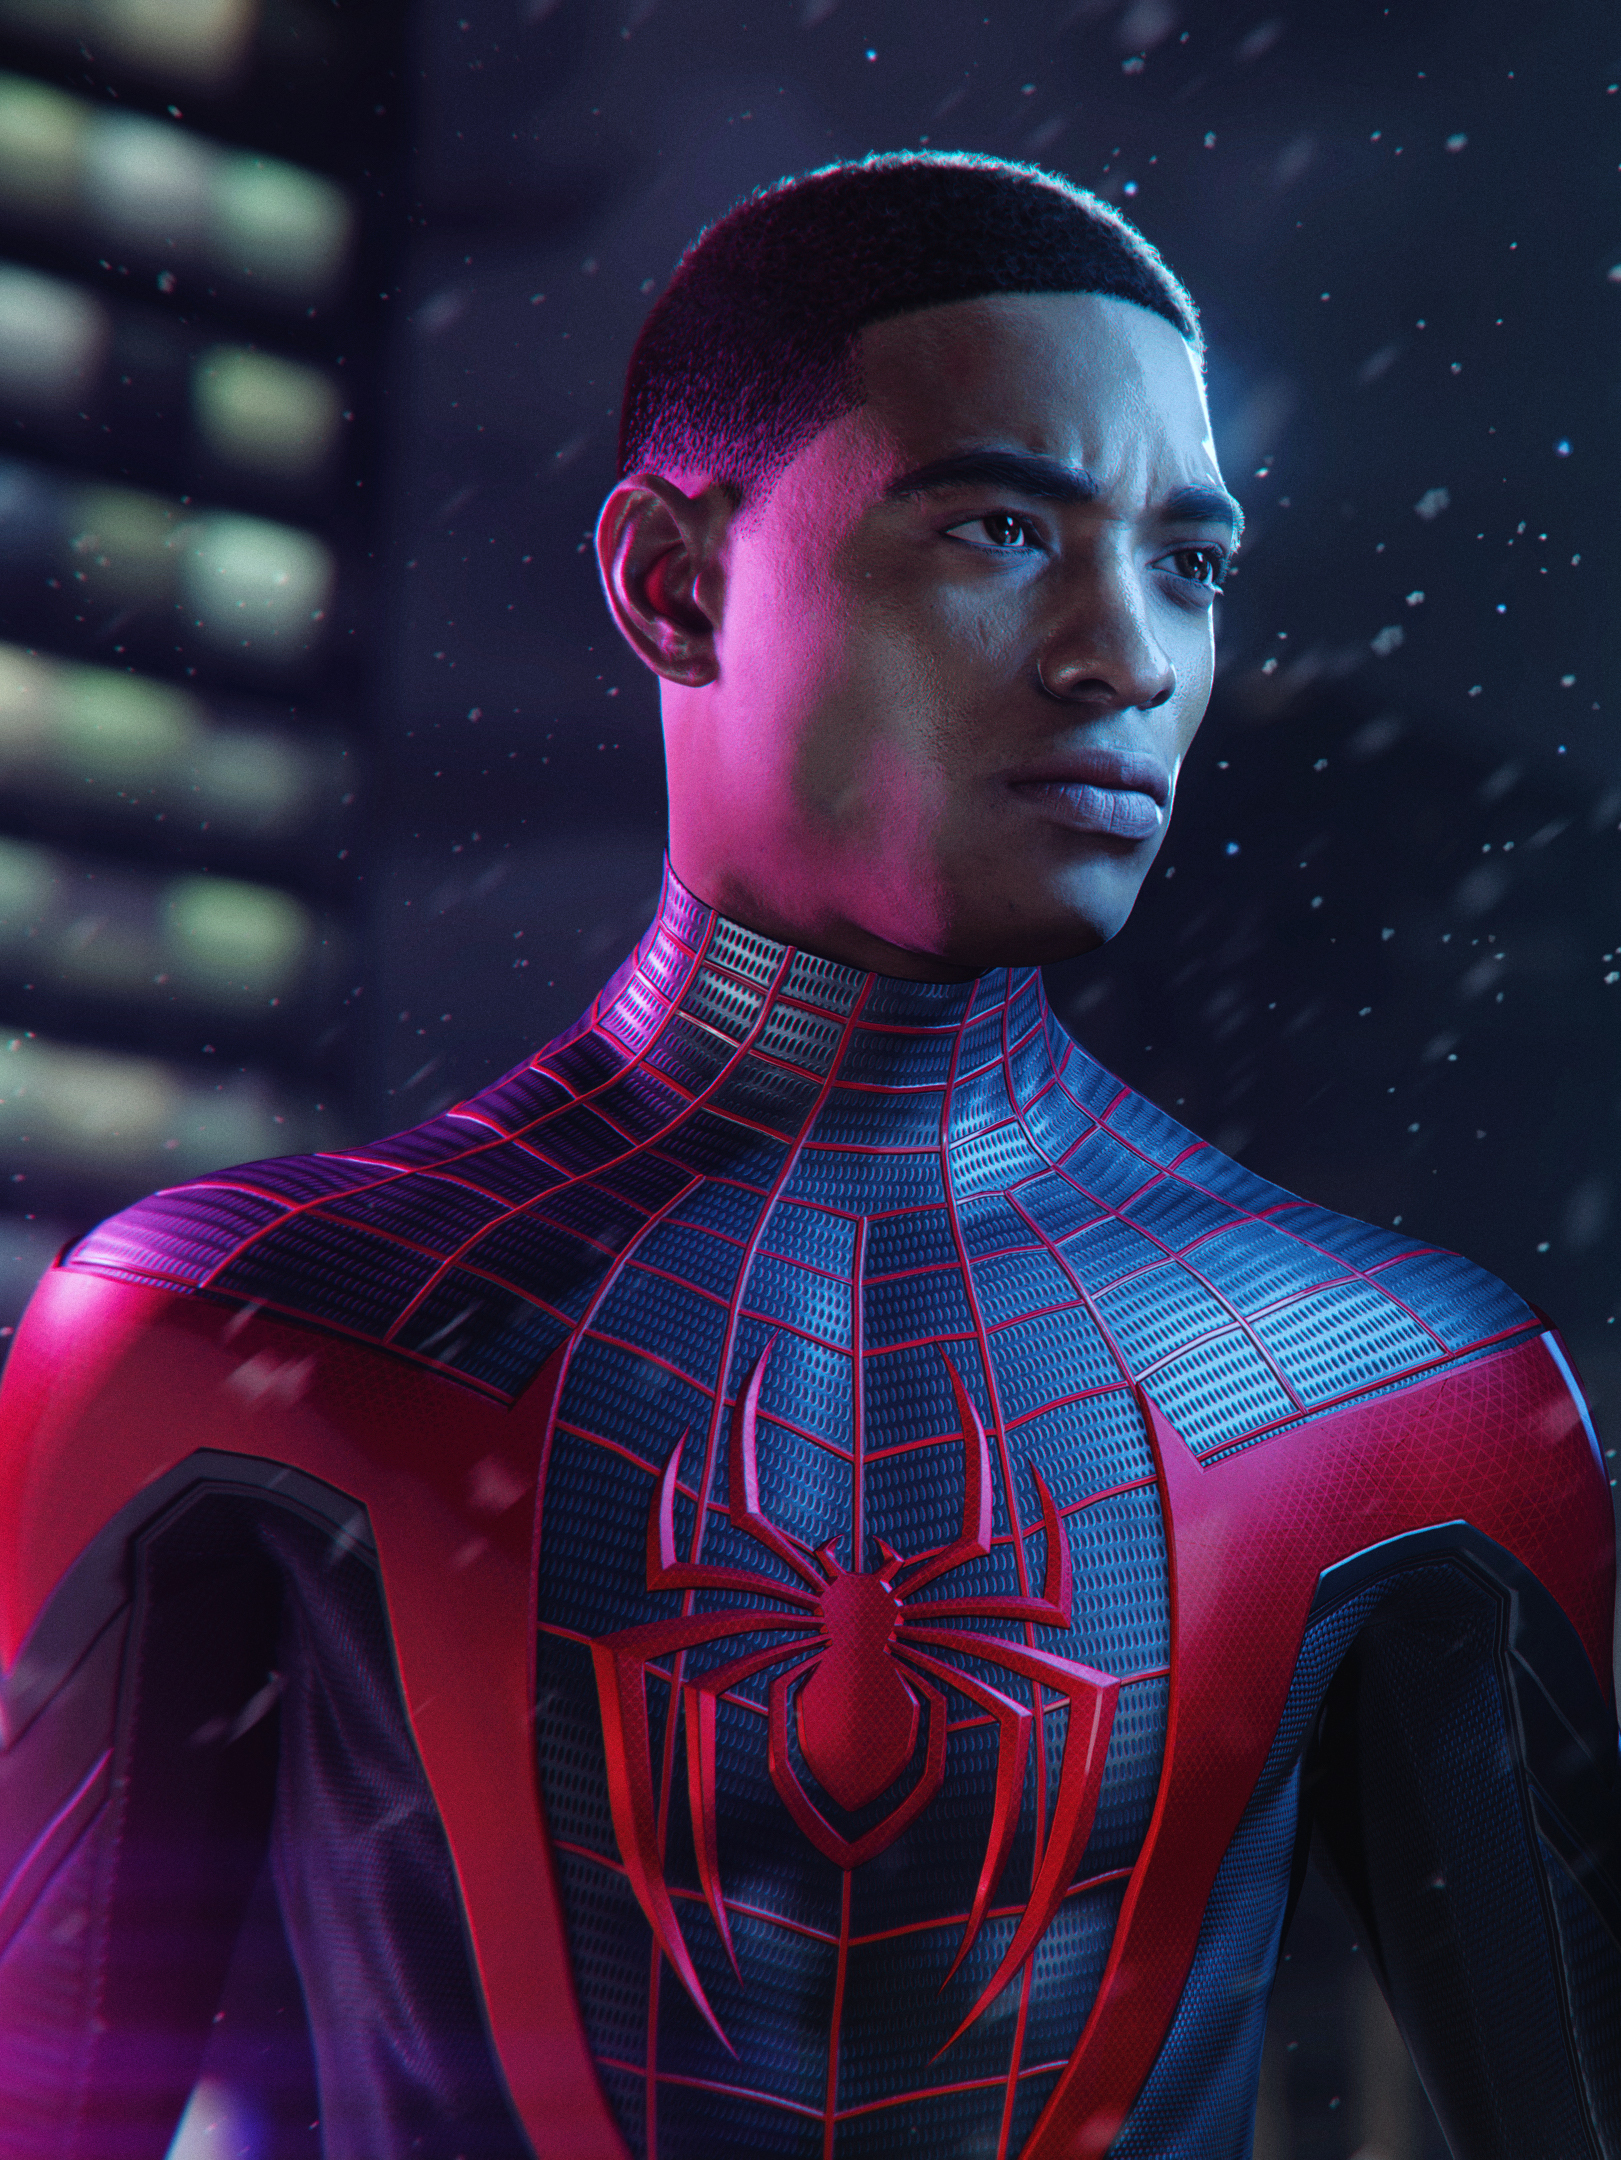 Miles Morales in Marvel's Spider-Man: Miles Morales Superstar for PS5 and PS4